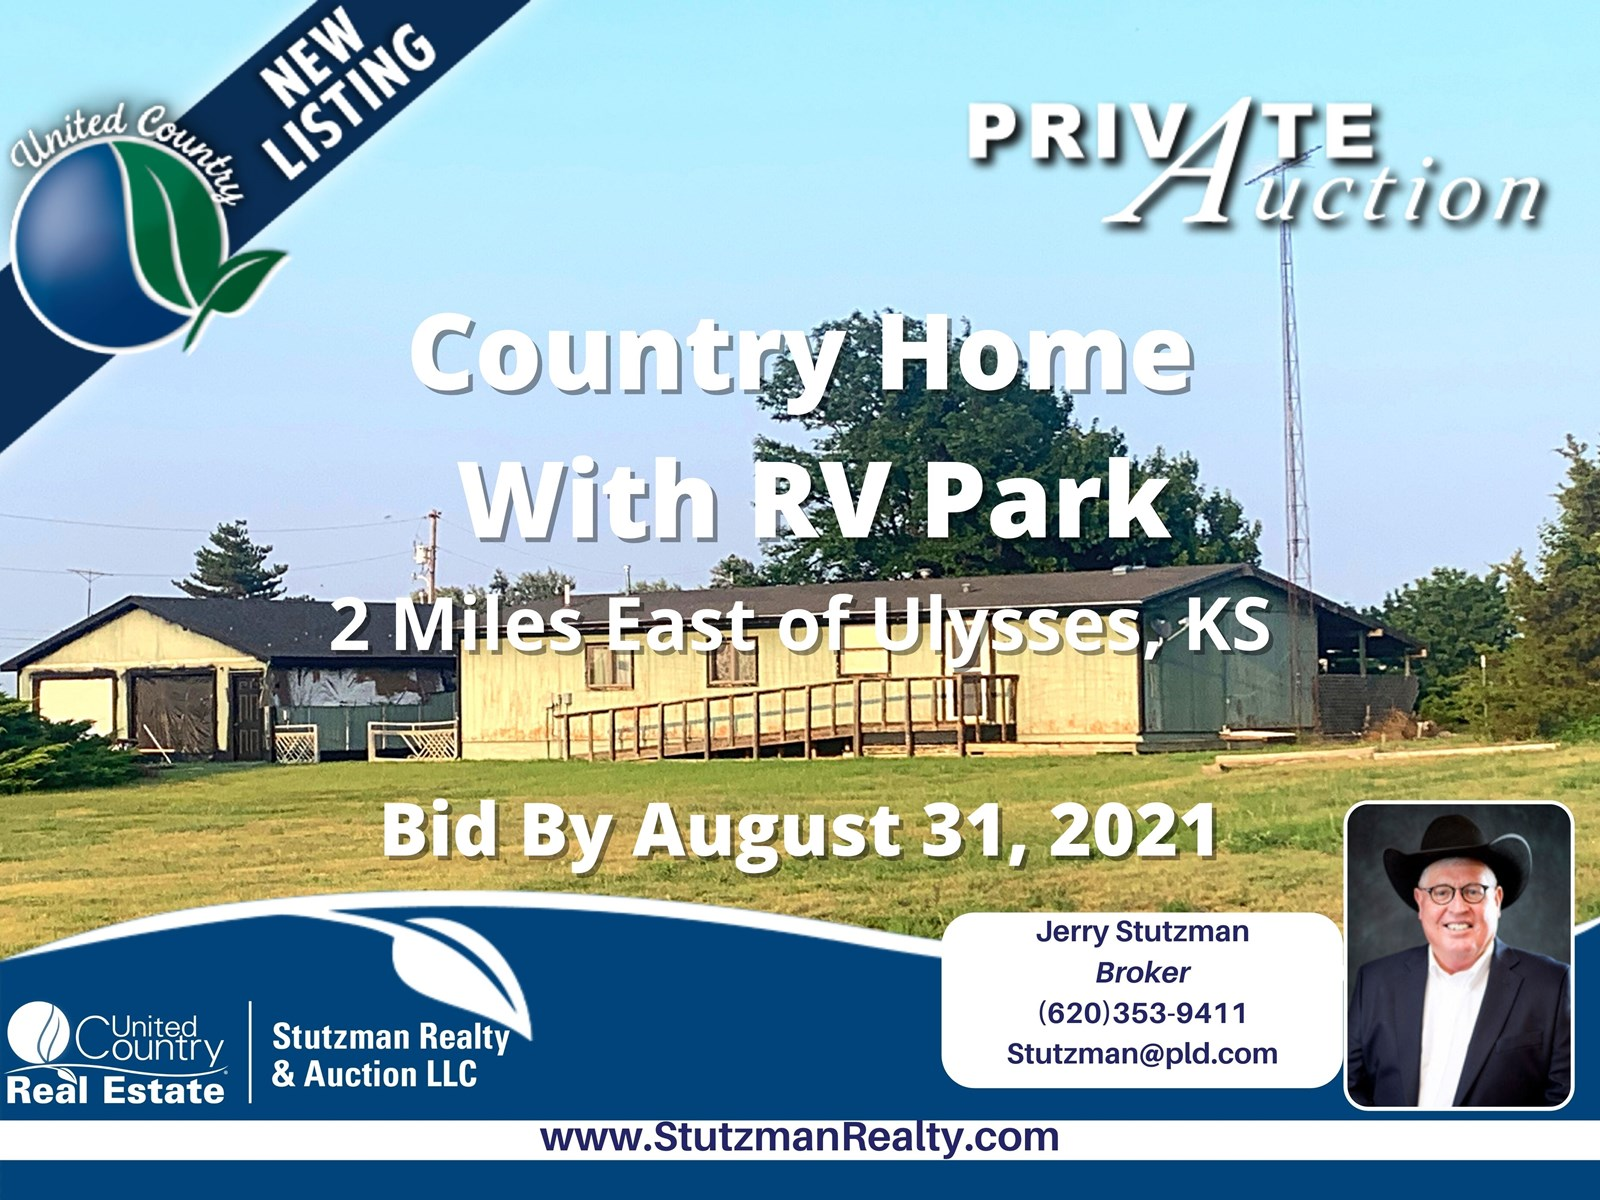 Private Auction- Country Home With RV Park